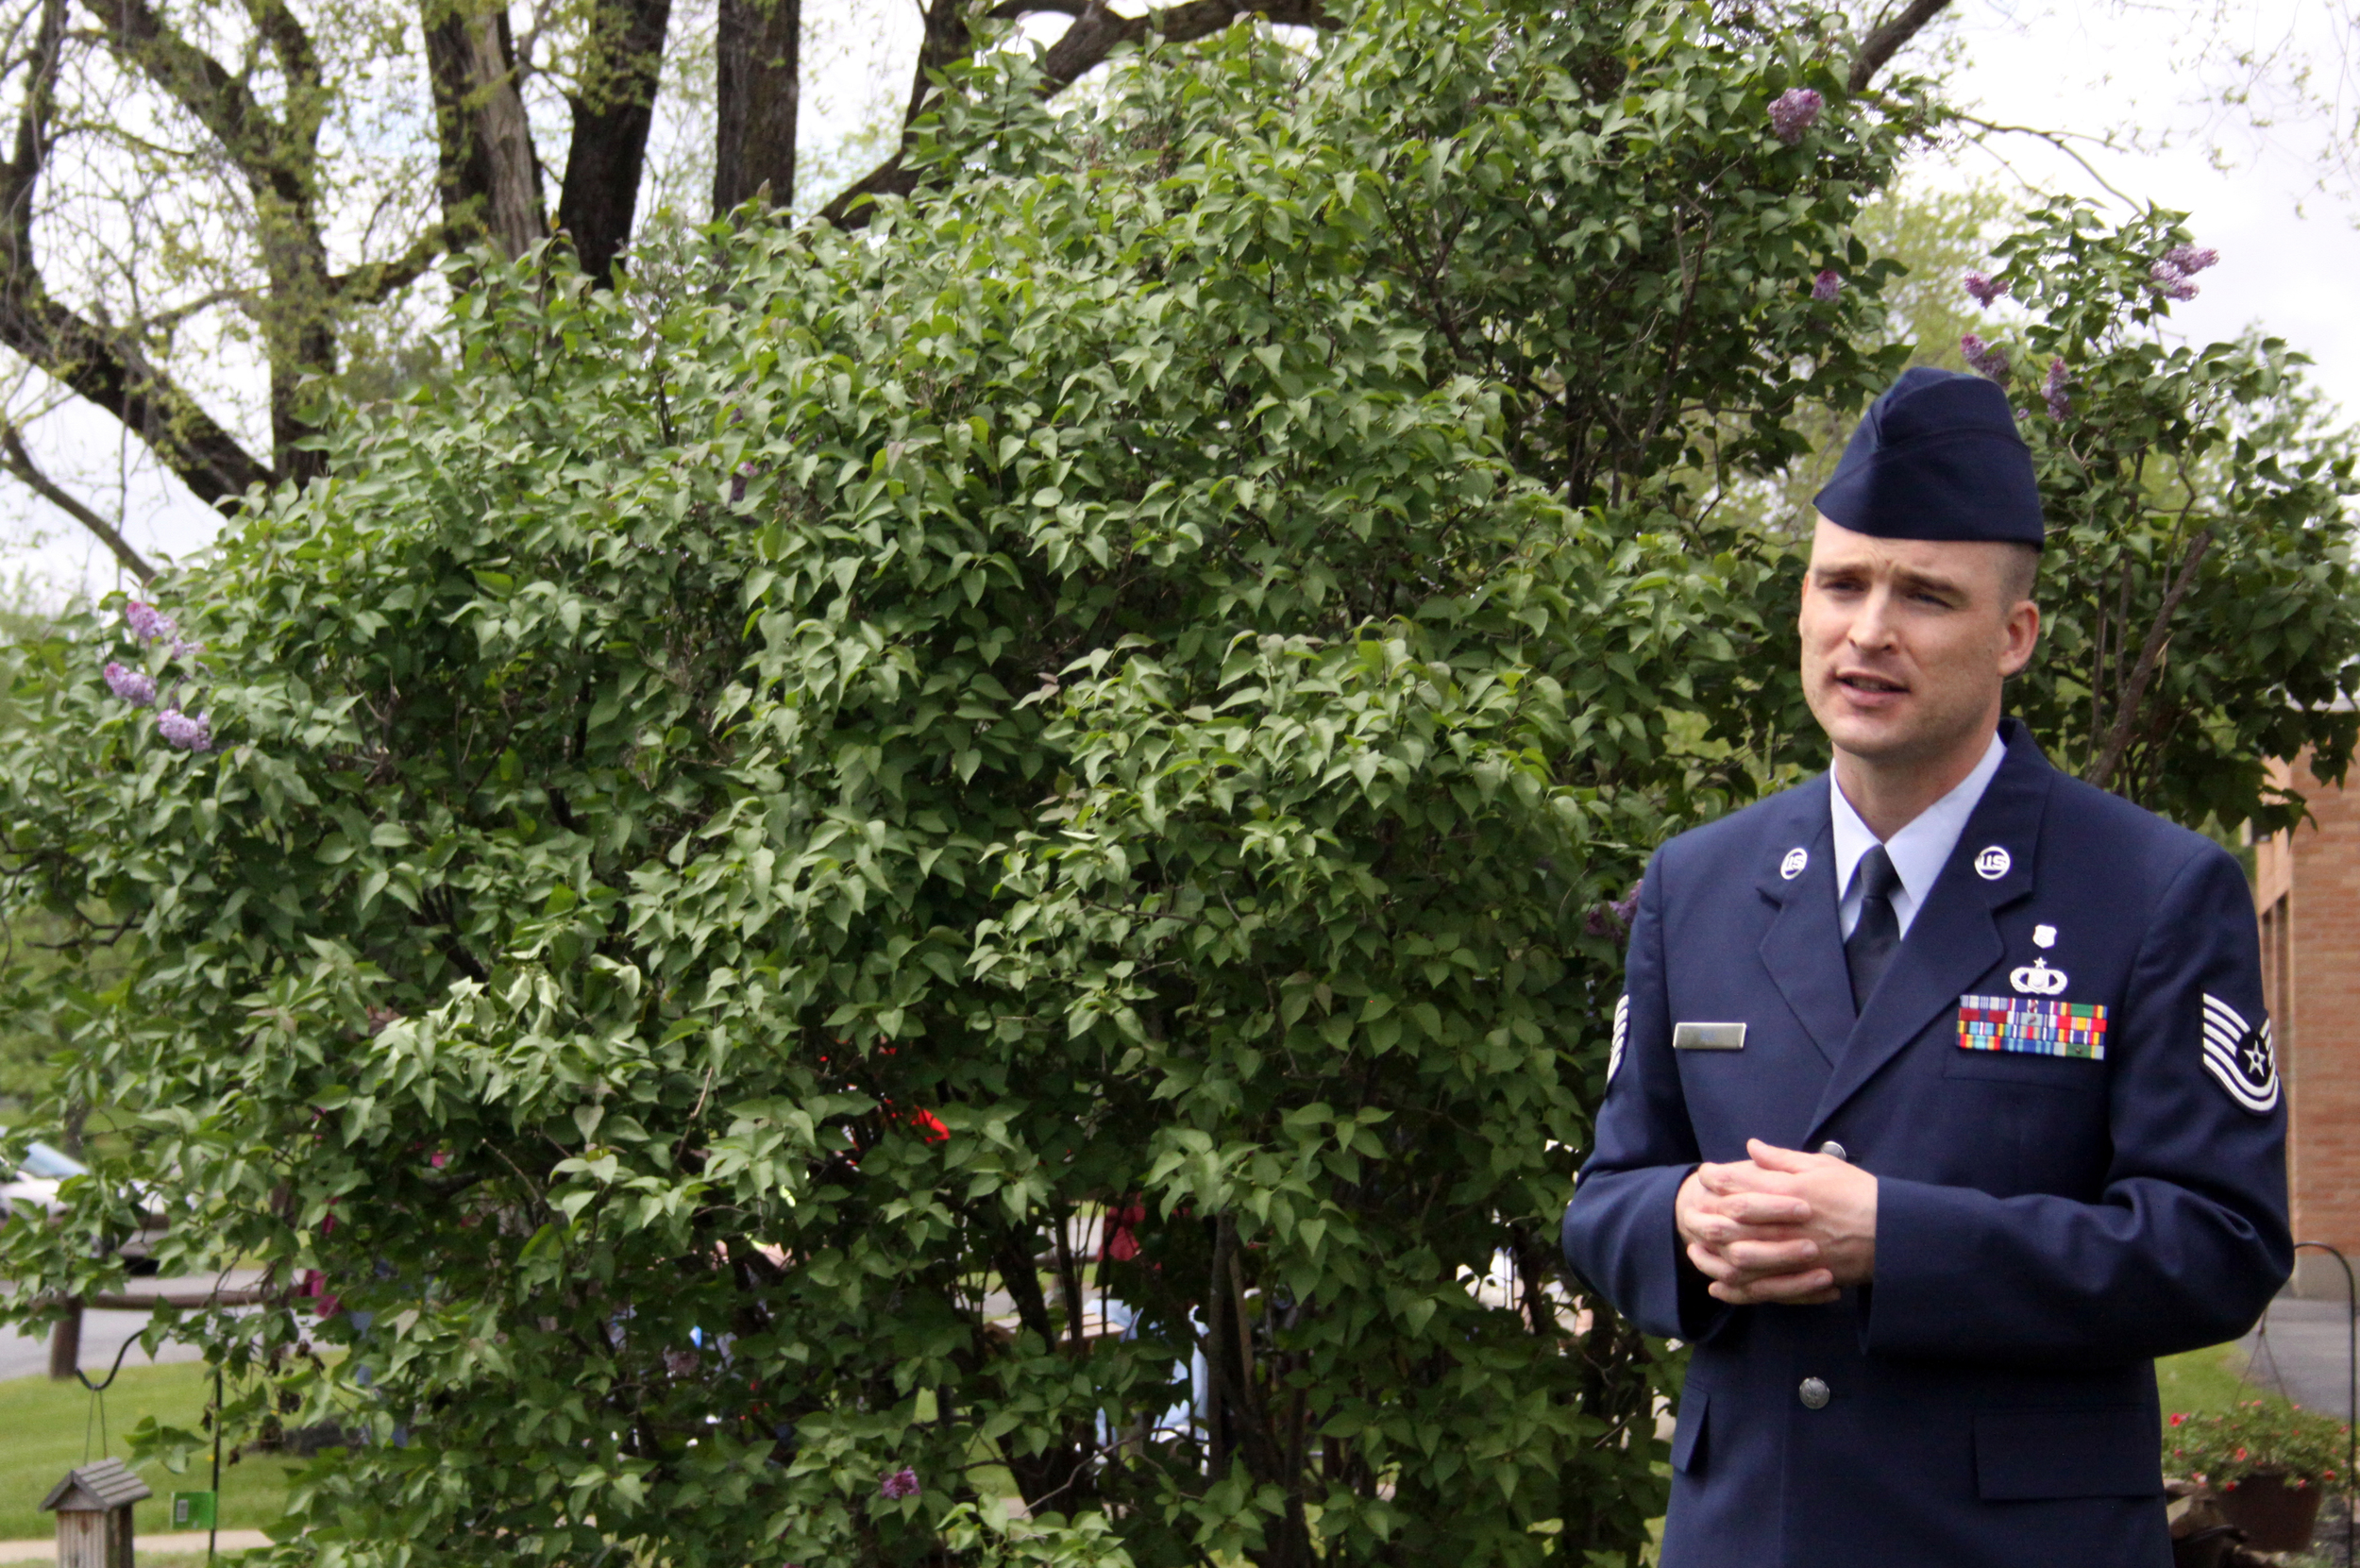 Lexington Safety Manager and Technical Sargeant, New York Air National Guard William Roe gave a moving speech about the history and meaning of Memorial Day.